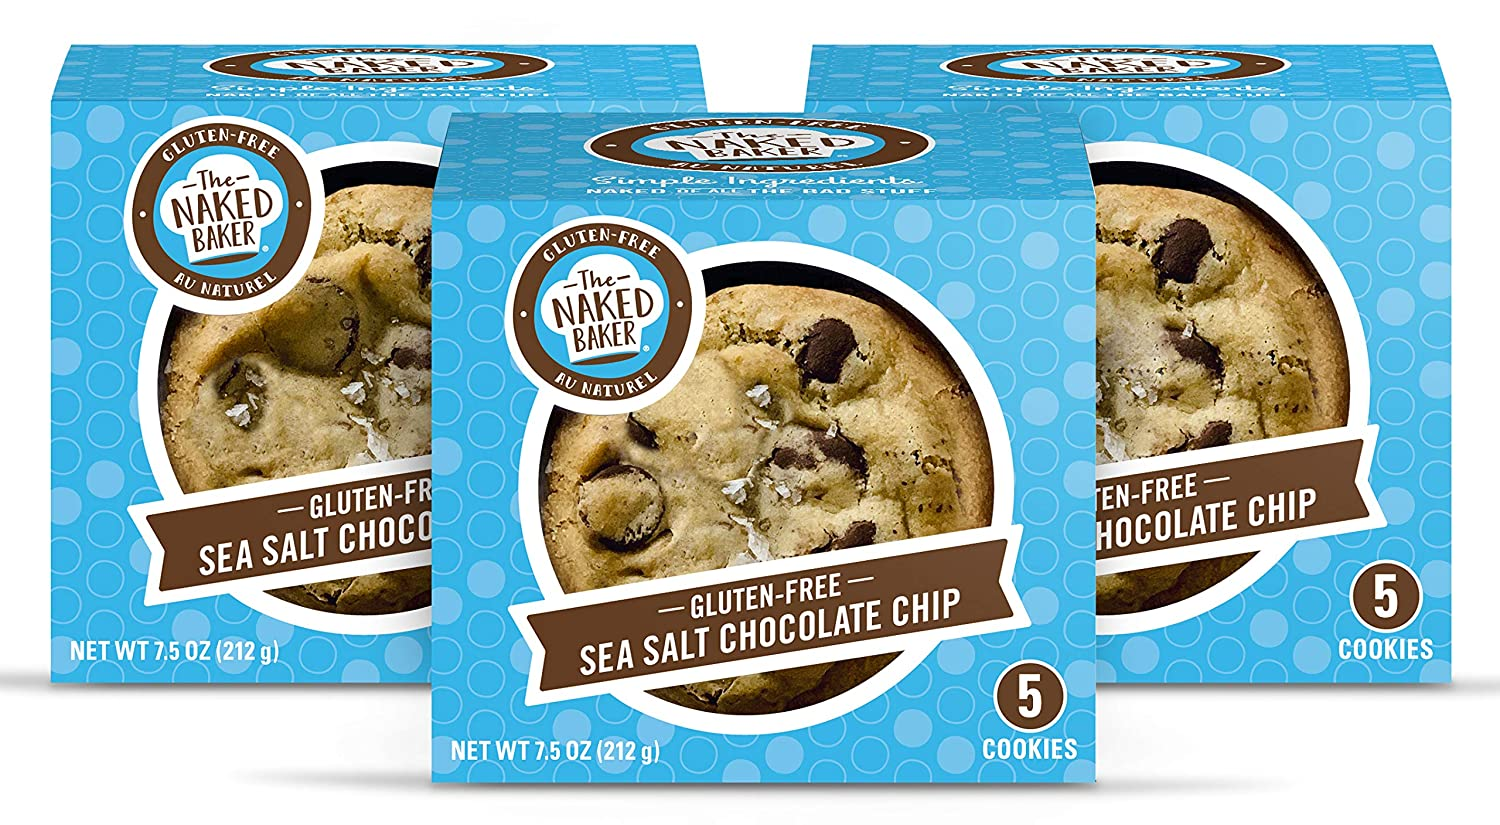 The Naked Baker Gluten Free Cookies, Soft Baked Chocolate Chip Sea Salt, All Natural, THREE 5-cookie packages